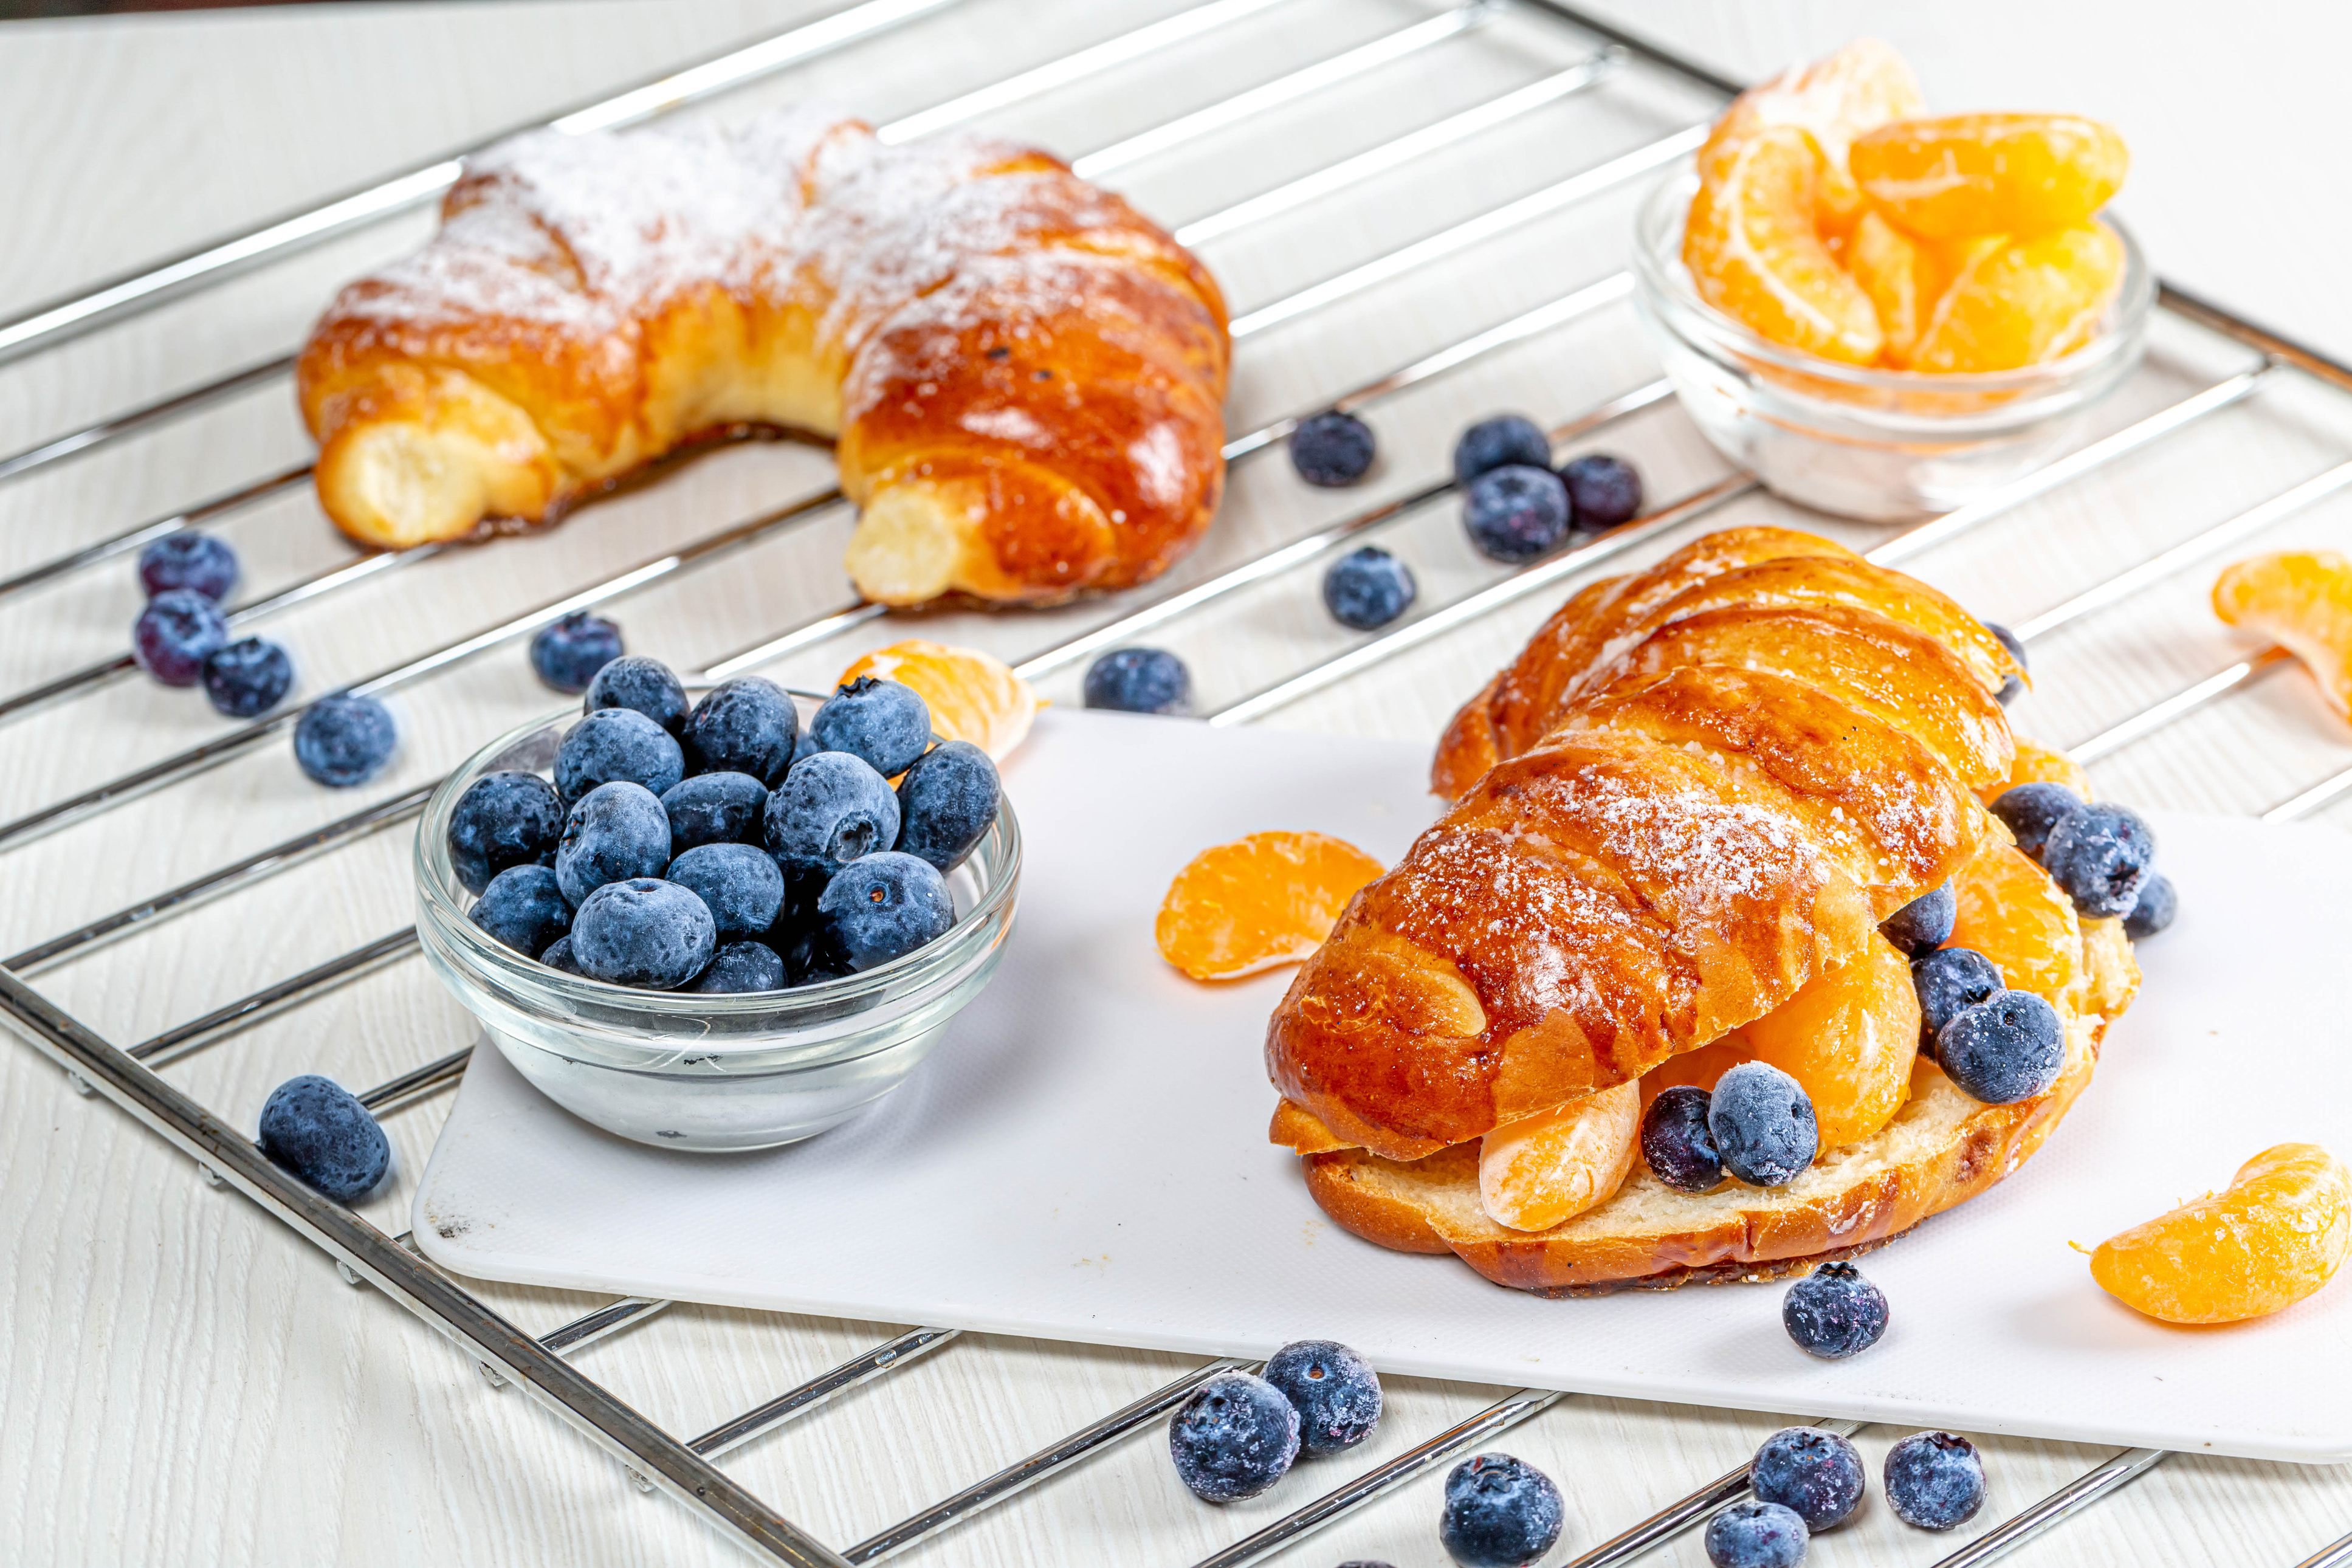 Wallpaper Fresh croissants with blueberries and mandarin slices